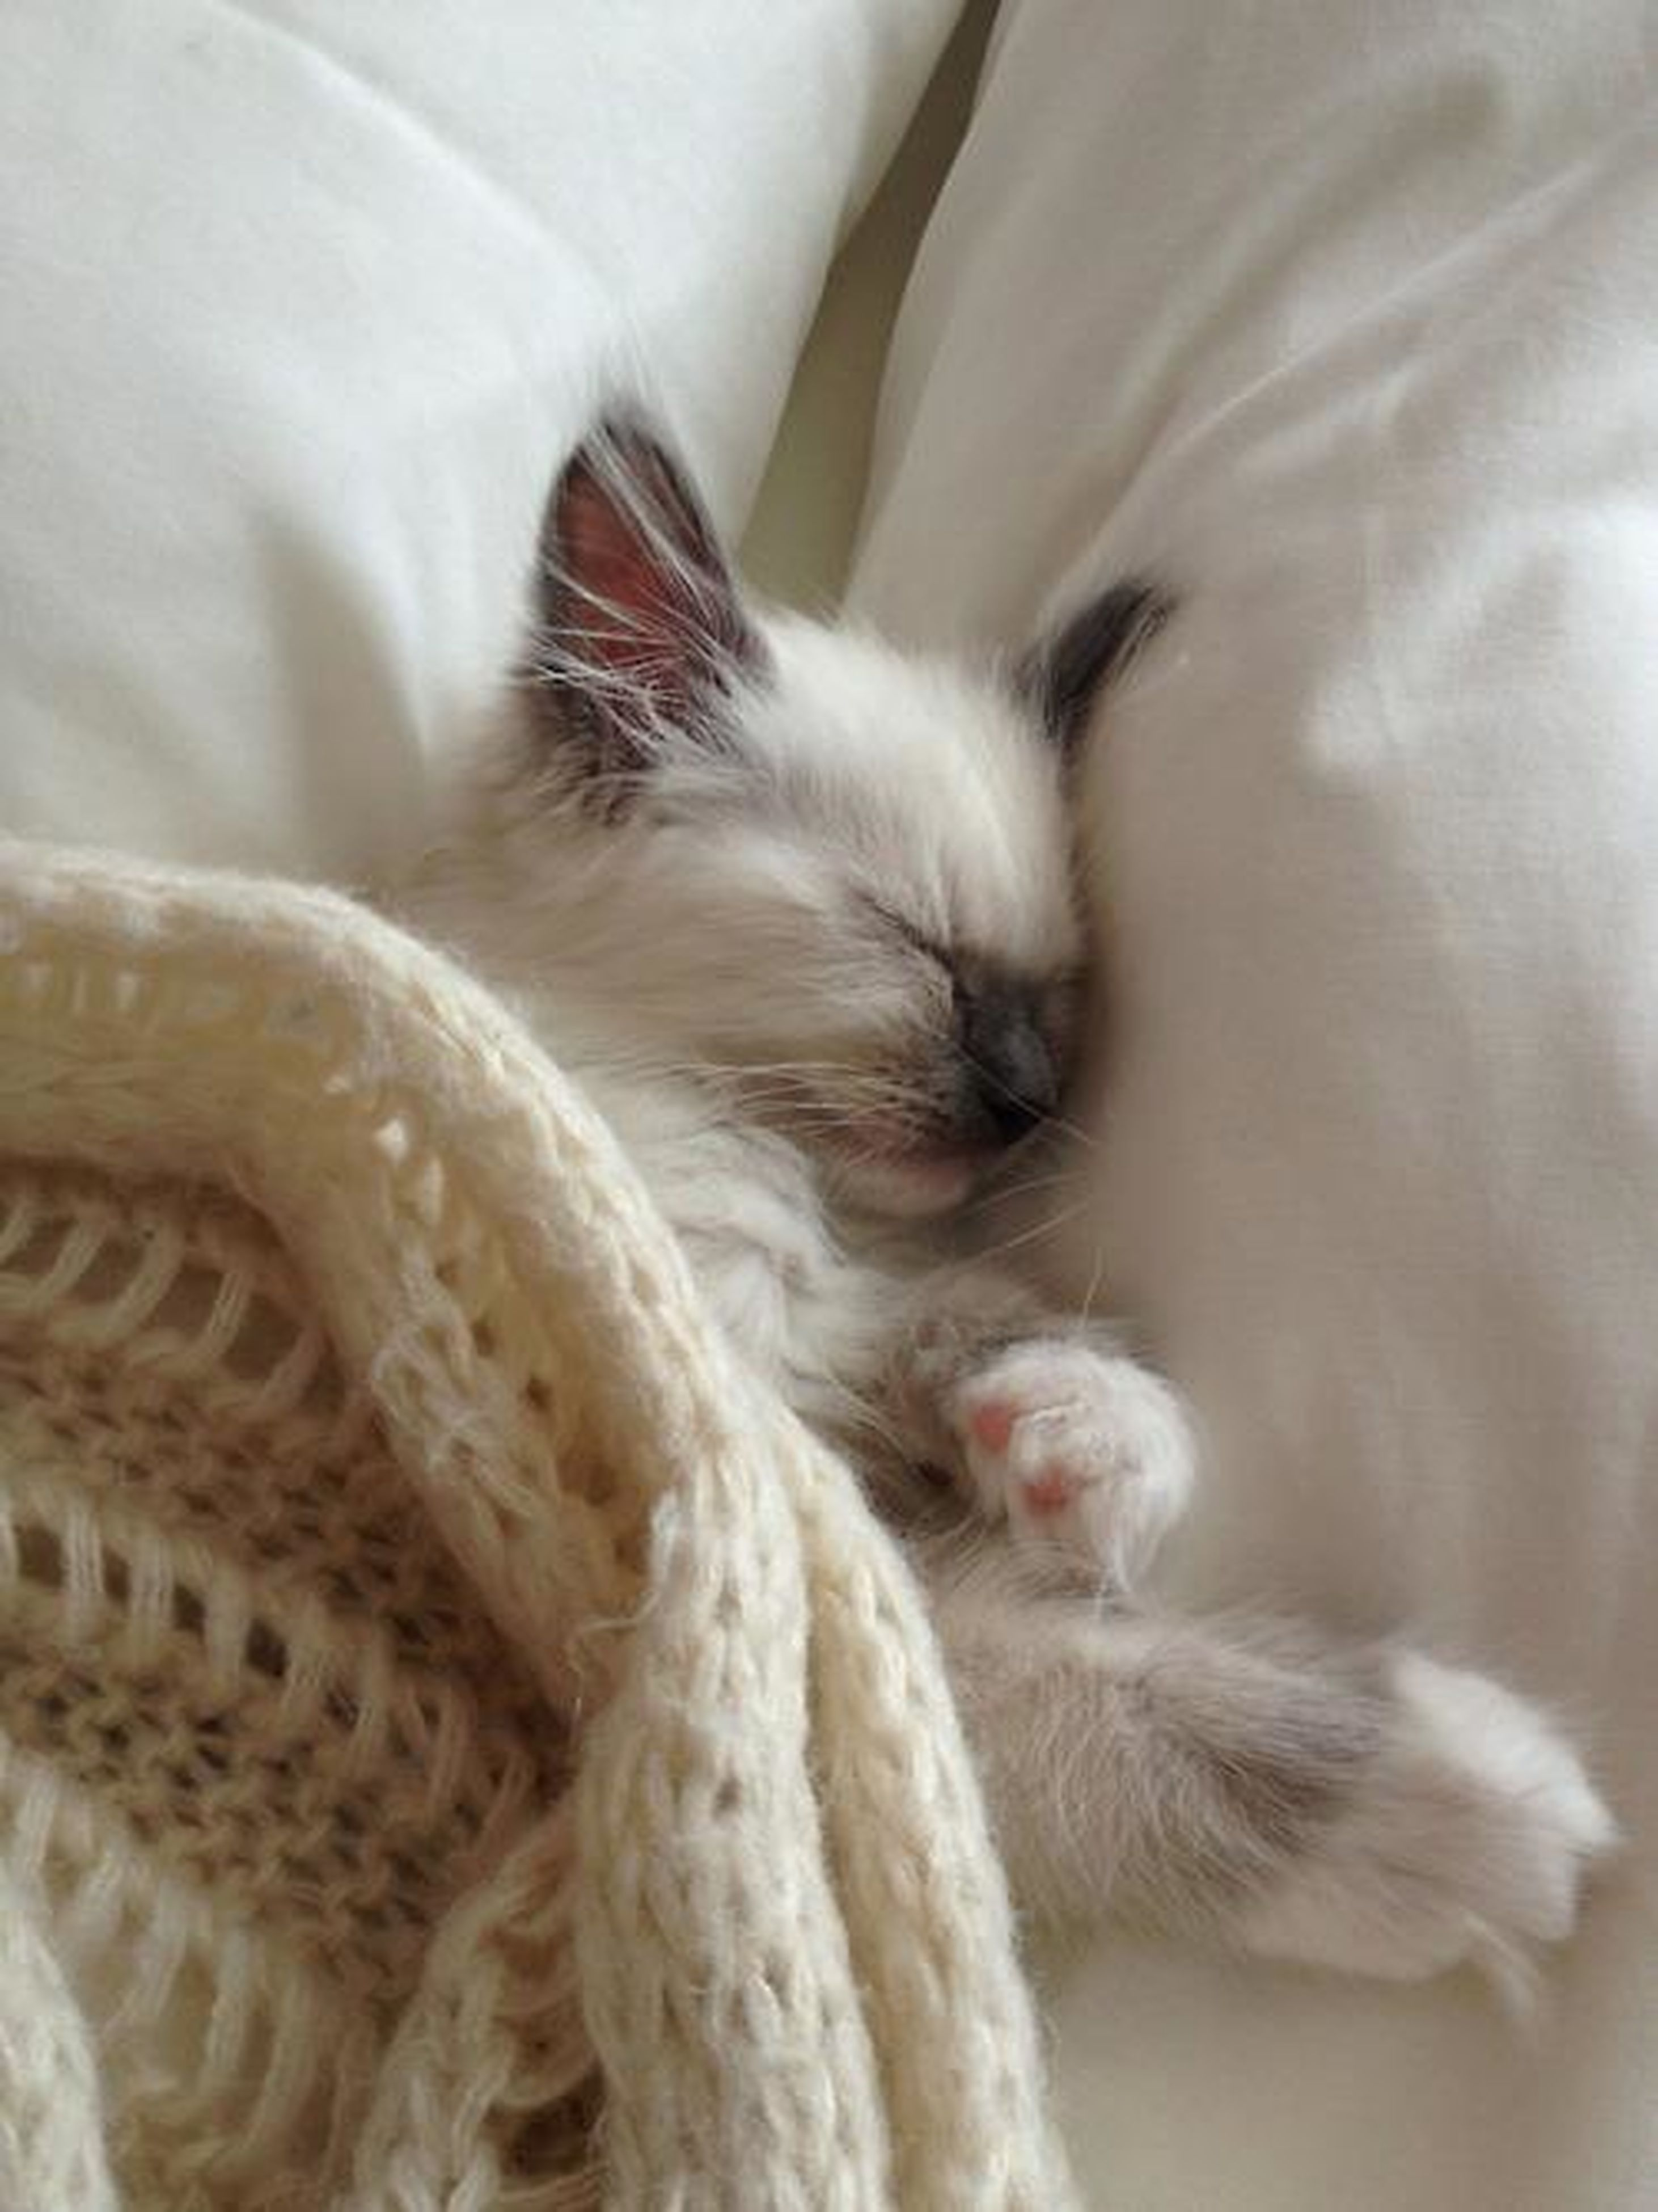 domestic animals, pets, animal themes, one animal, mammal, domestic cat, indoors, cat, relaxation, white color, feline, sleeping, resting, lying down, close-up, bed, whisker, high angle view, animal hair, eyes closed